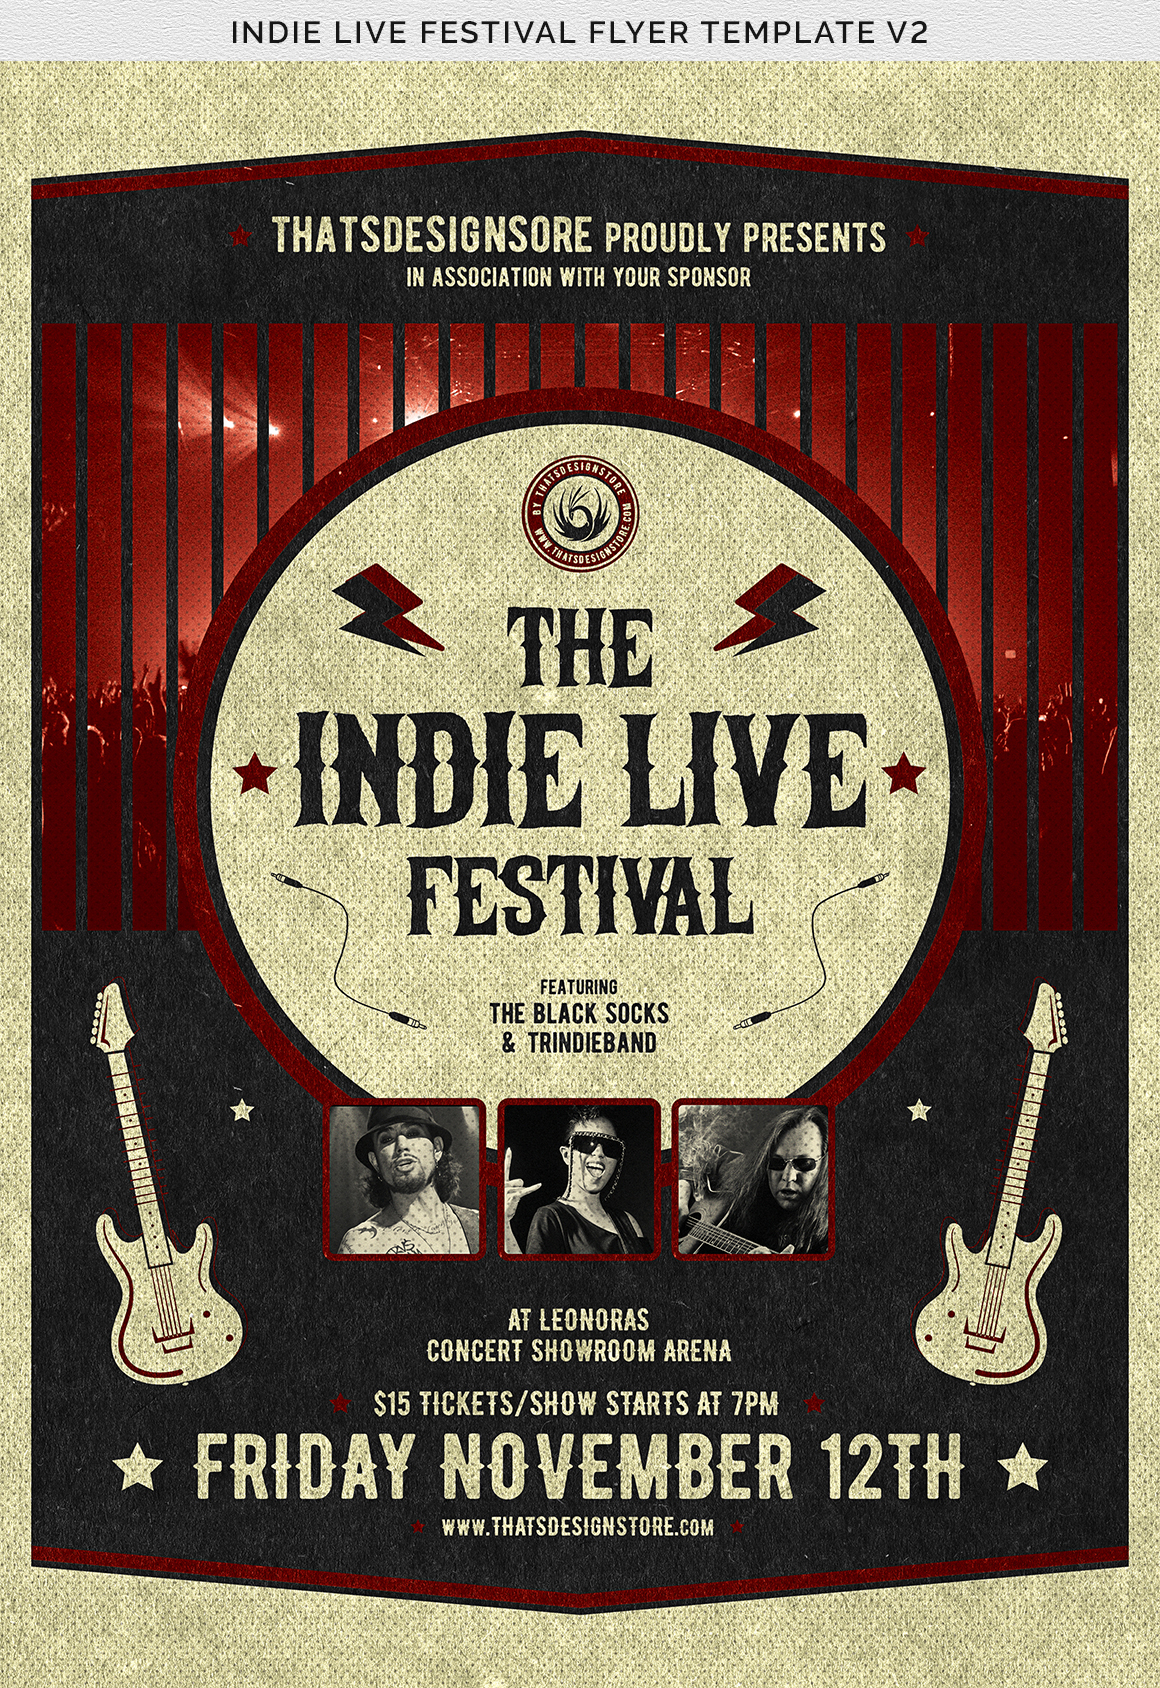 Indie Live Festival Flyer Template V2 example image 7